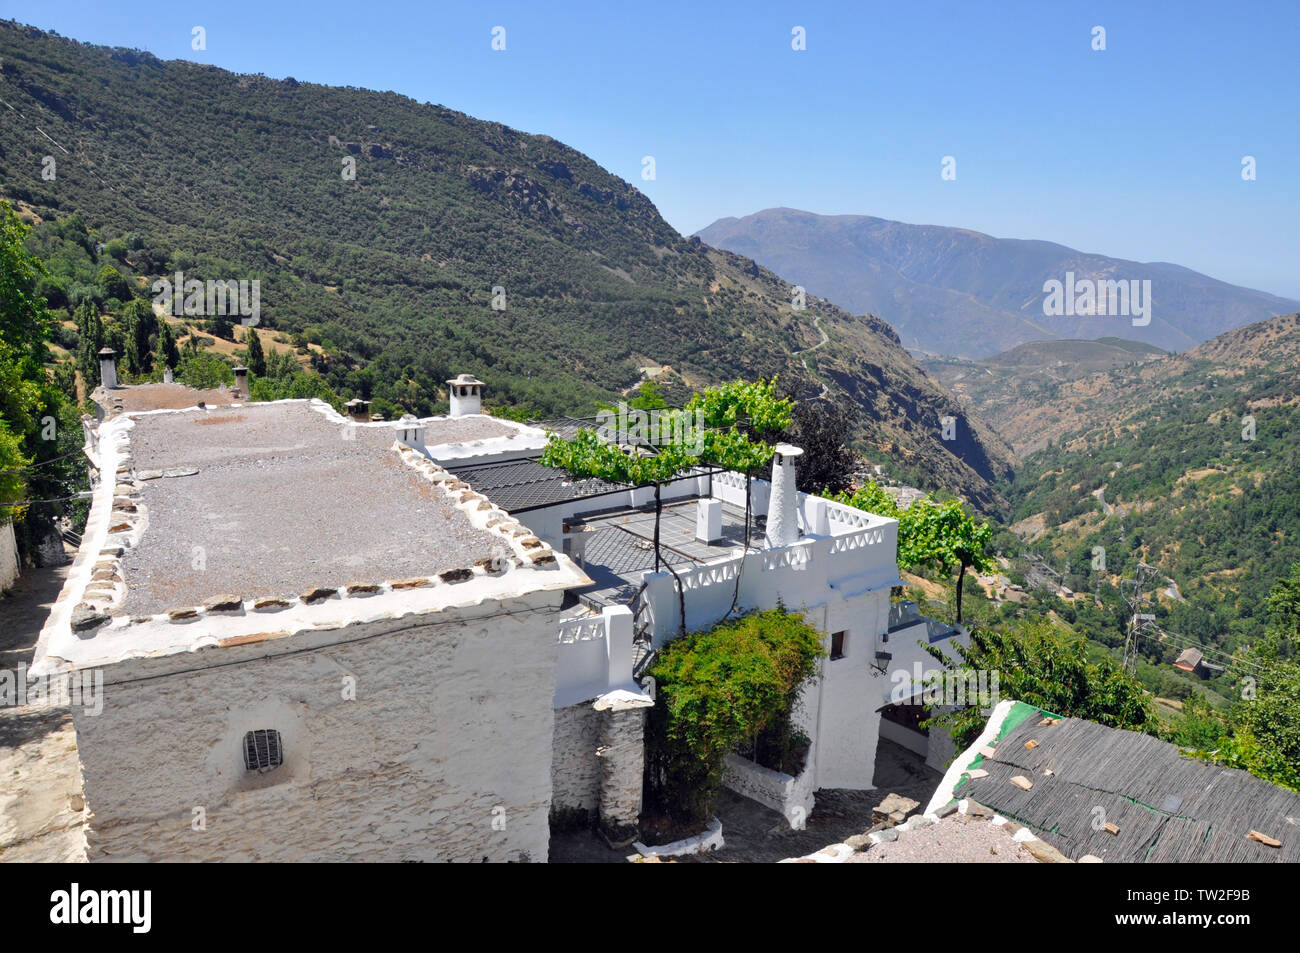 View of the Poqueira valley from the picturesque village of Bubion in Las Alpujarras, near Granada in southern Spain. Stock Photo